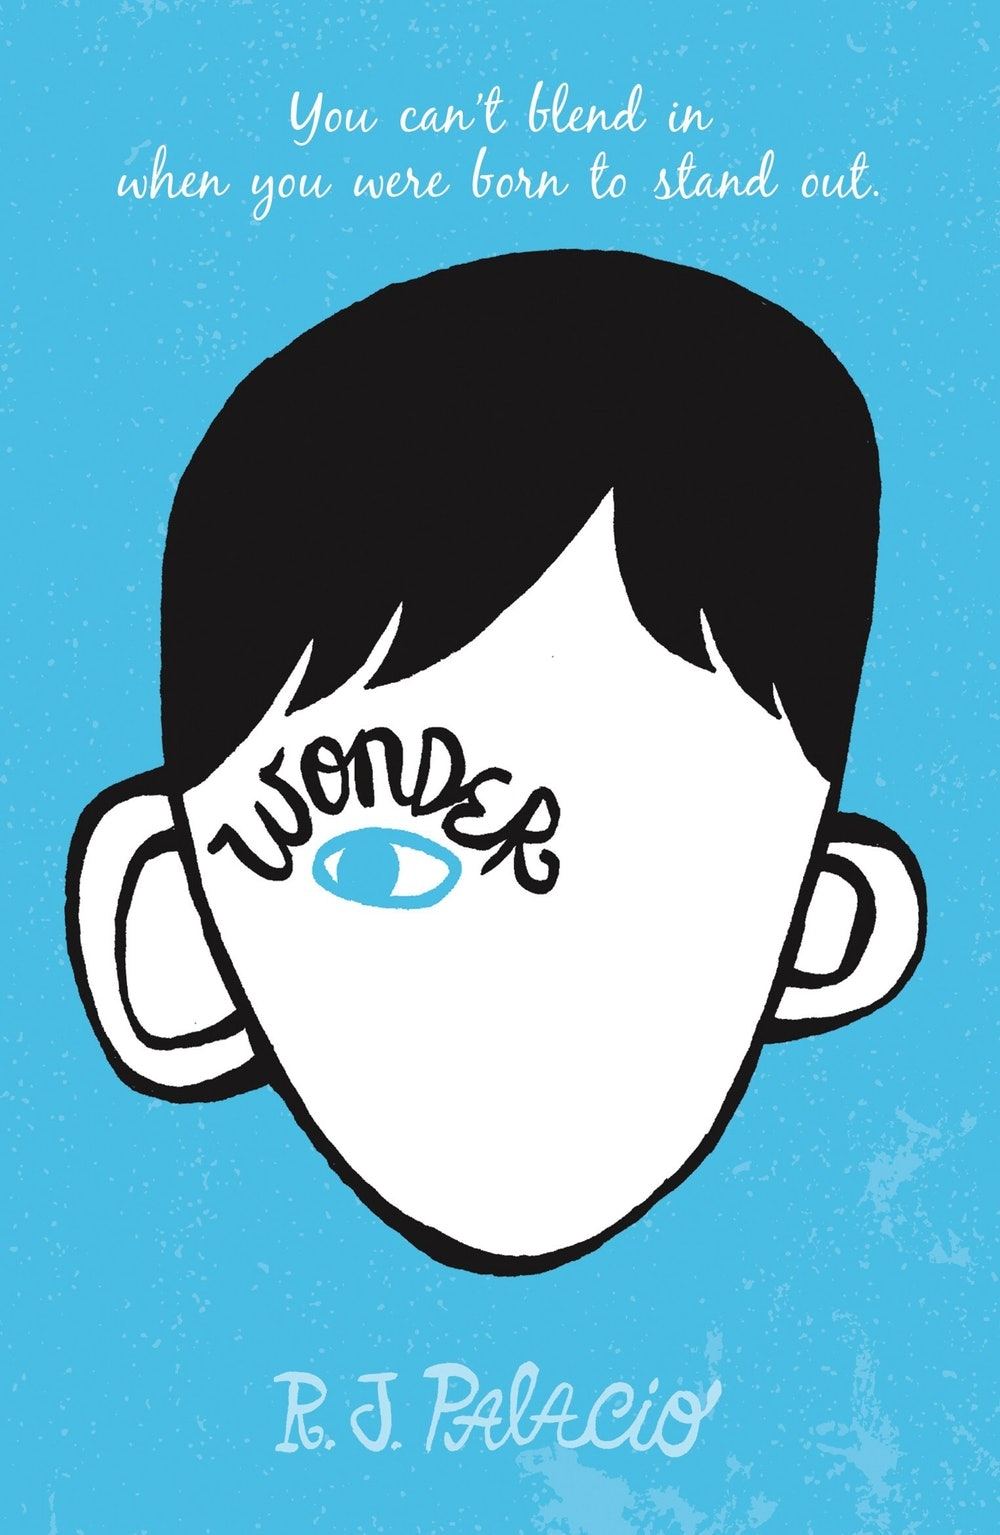 Wonder Book Quotes 13 'Wonder' Book Quotes That Will Inspire You To Choose Kind (And  Wonder Book Quotes